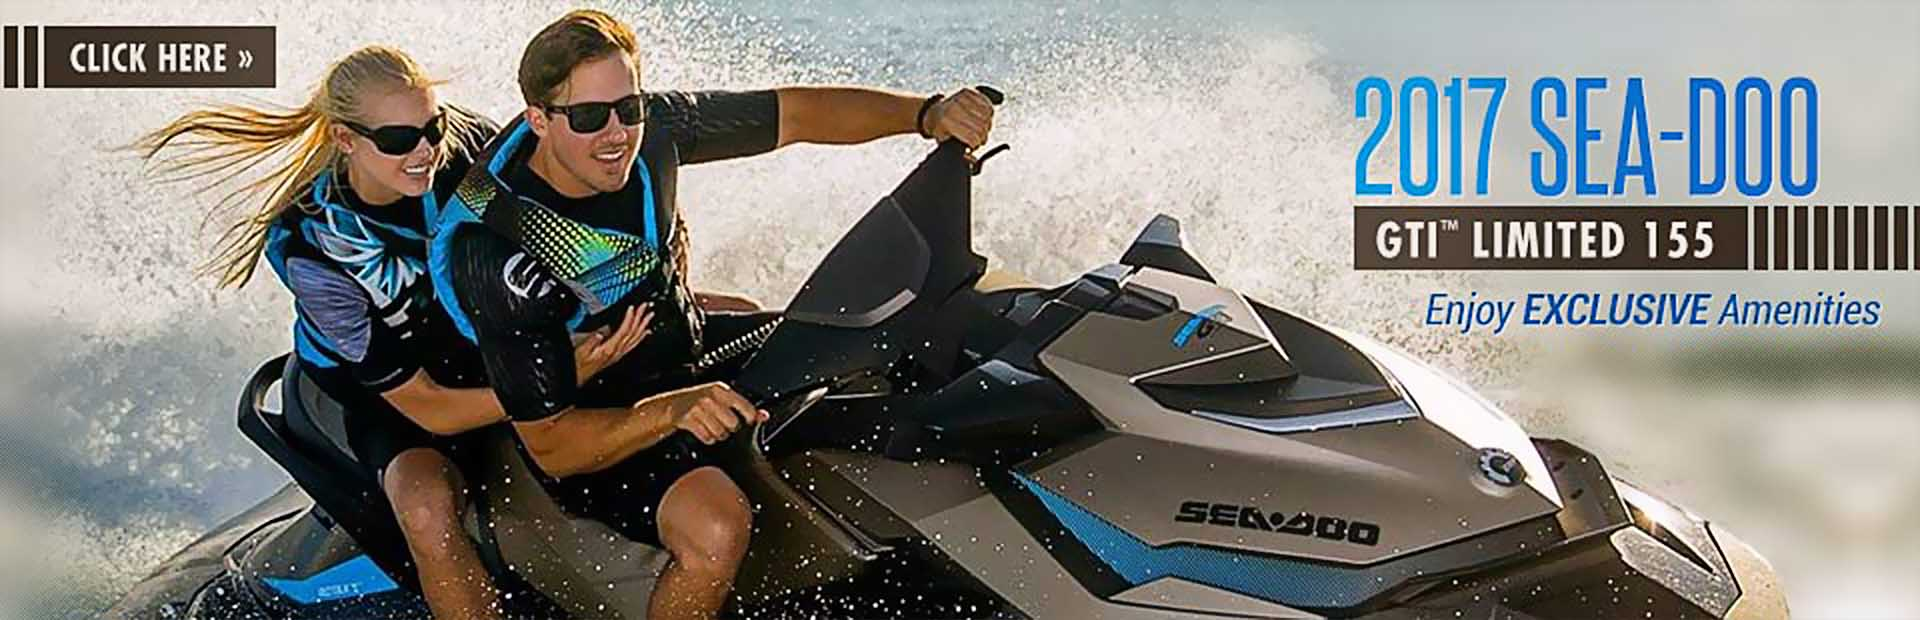 The 2017 Sea-Doo GTI™ Limited 155: Click here for details.